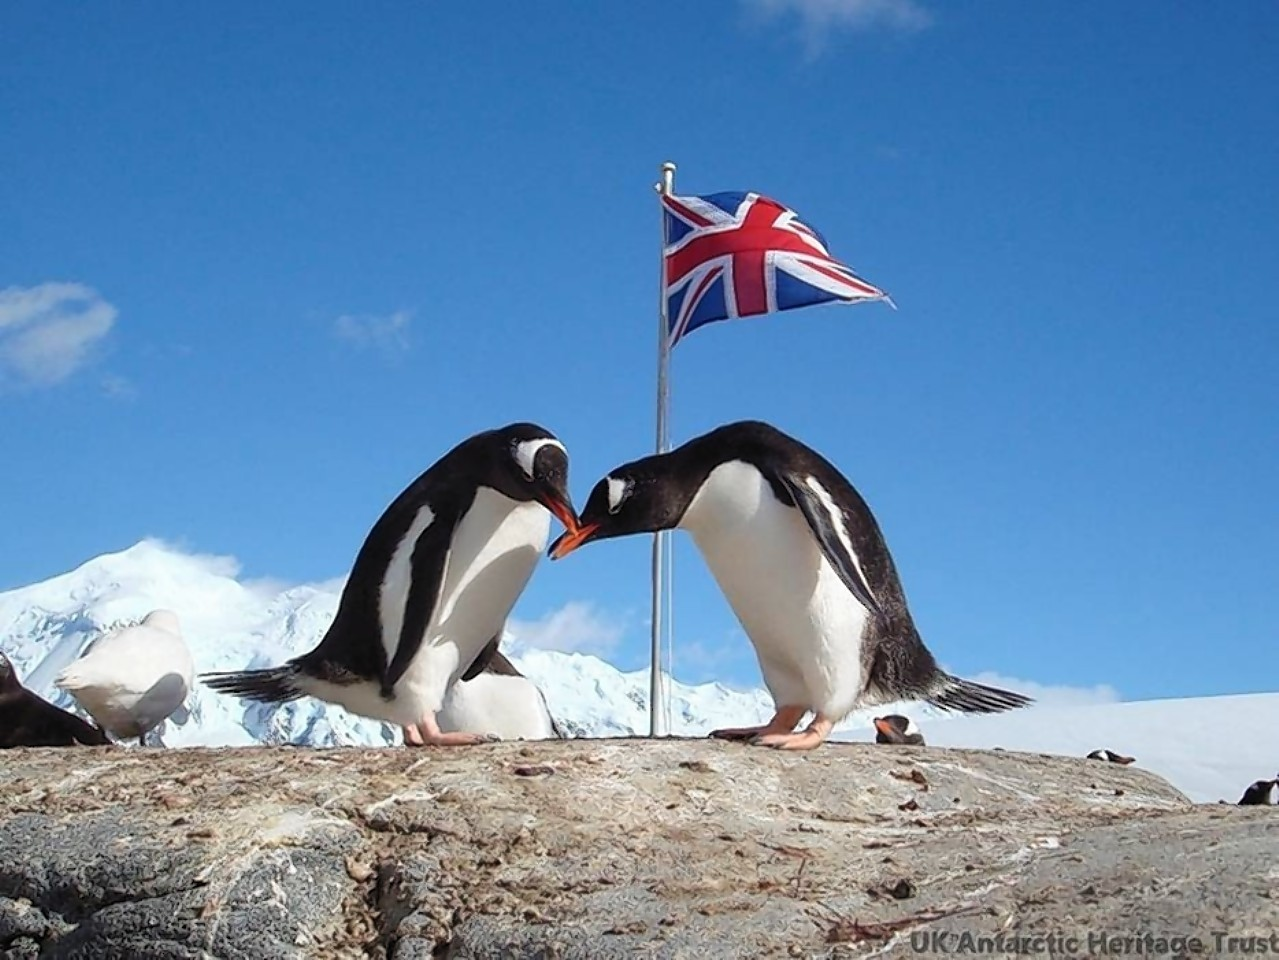 She will be responsible for the world's most southerly post office in Antarctica